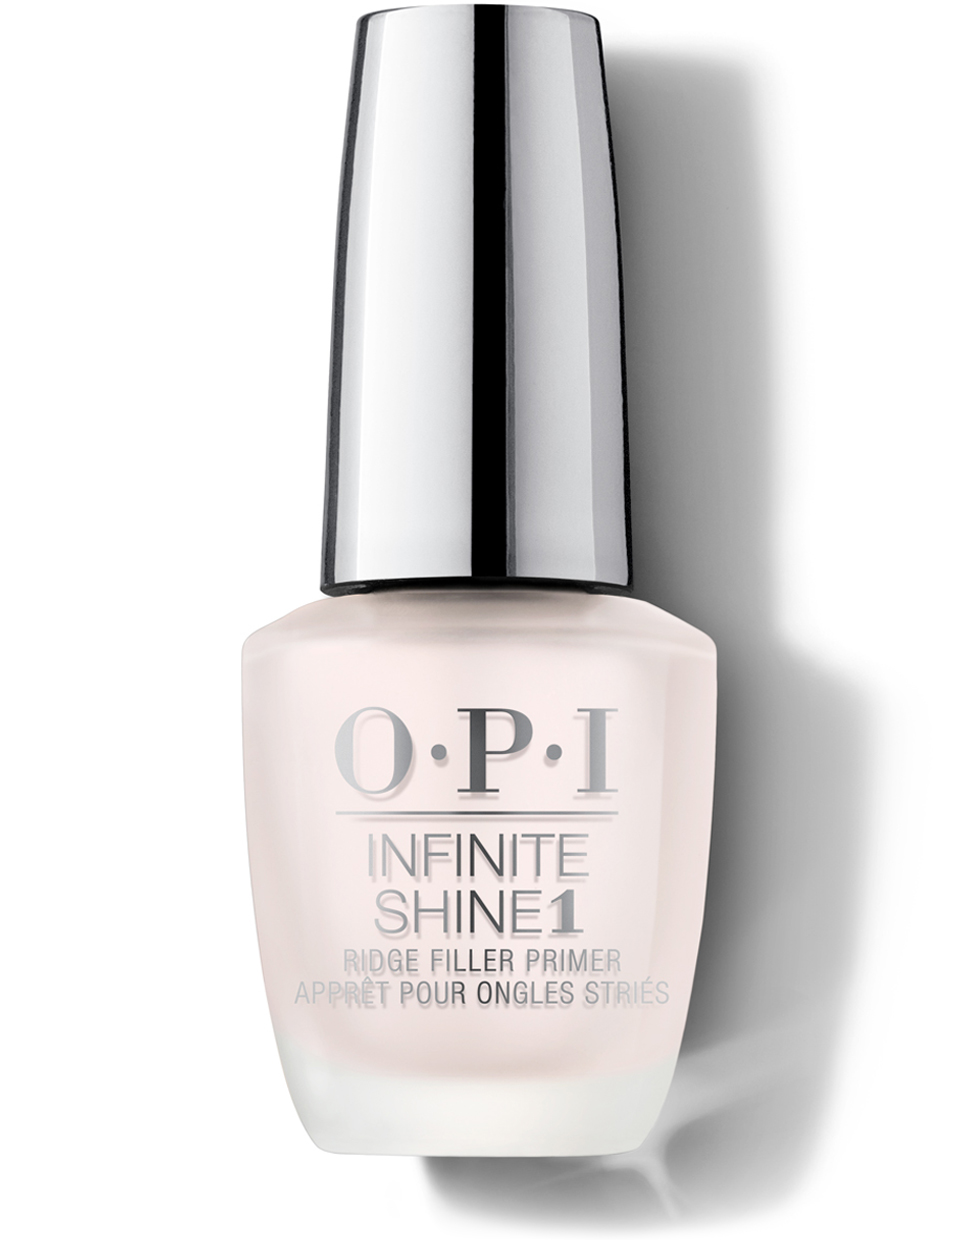 infinite shine ridge filler primer opi. Black Bedroom Furniture Sets. Home Design Ideas